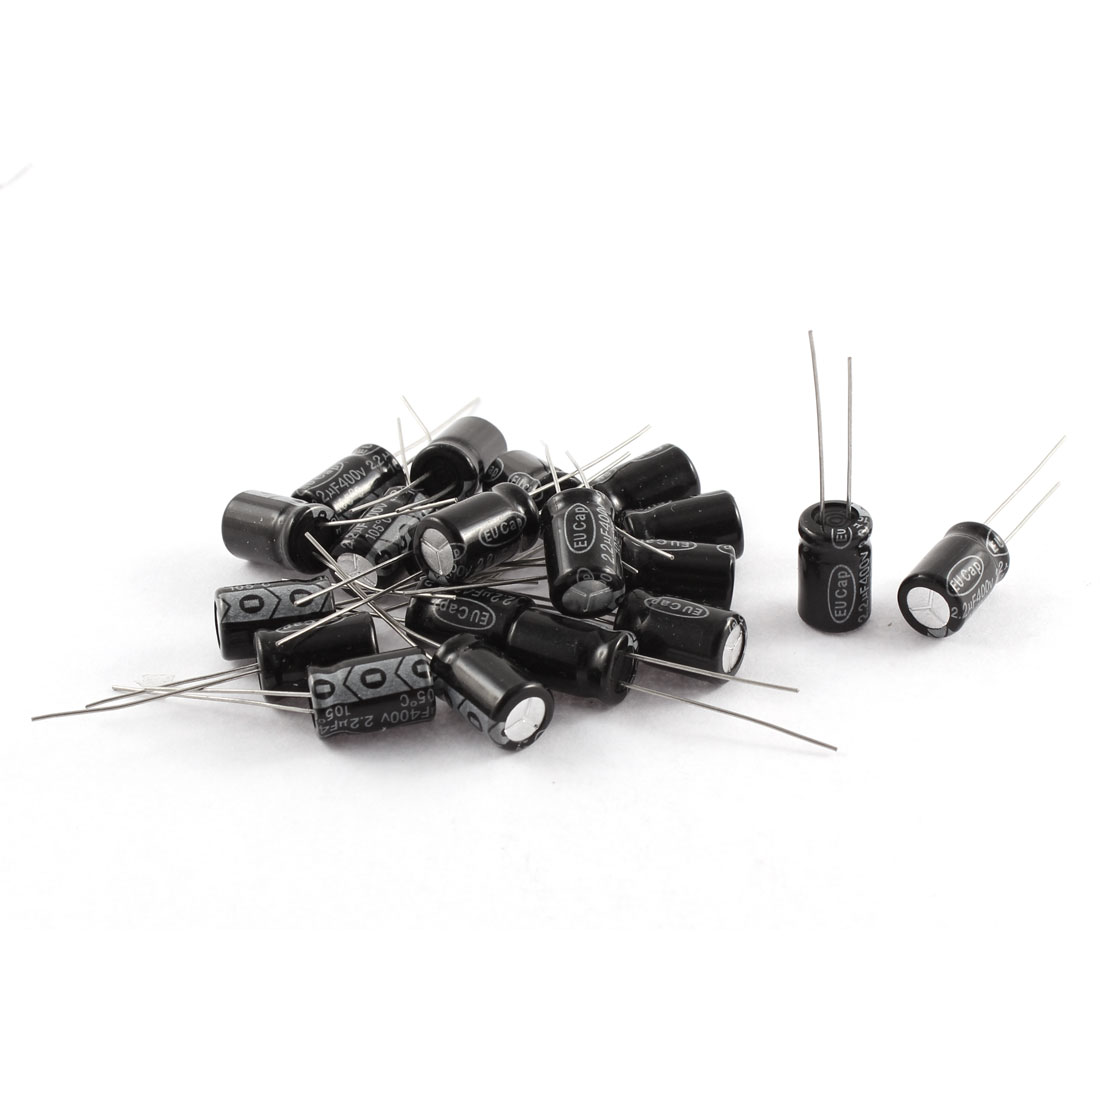 20Pcs 400V 2.2uF 105C Radial Lead Electrolytic Capacitor 8mm x 12mm